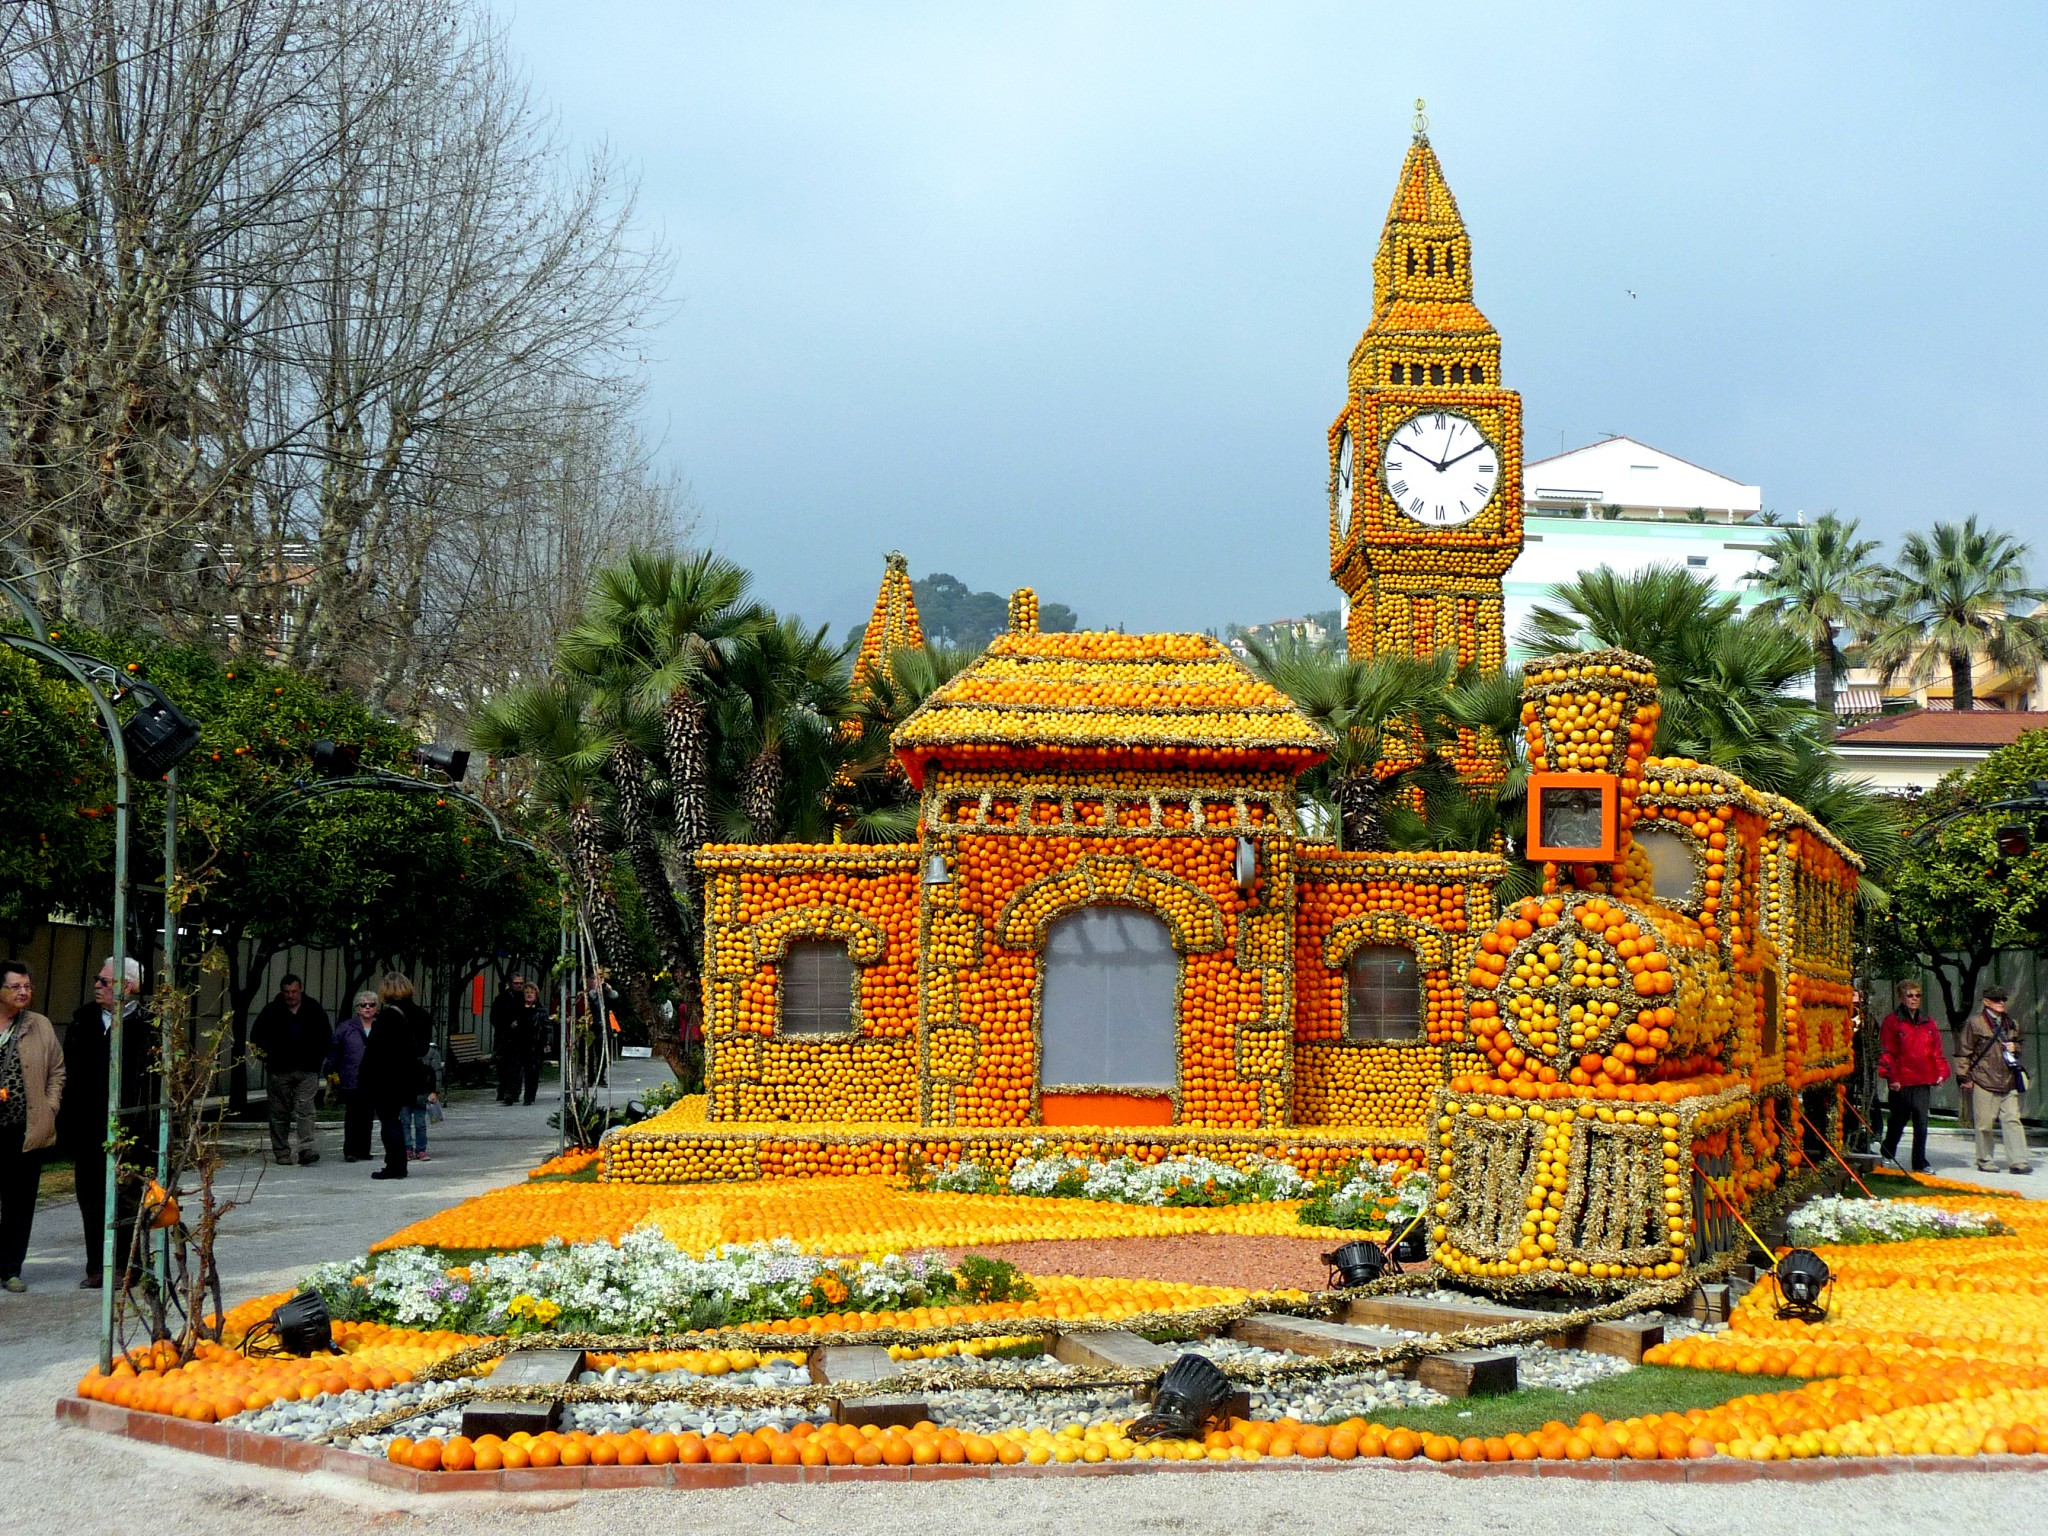 Menton Lemon Festival 2013 © Perline - licence [CC BY-SA 3.0] from Wikimedia Commons